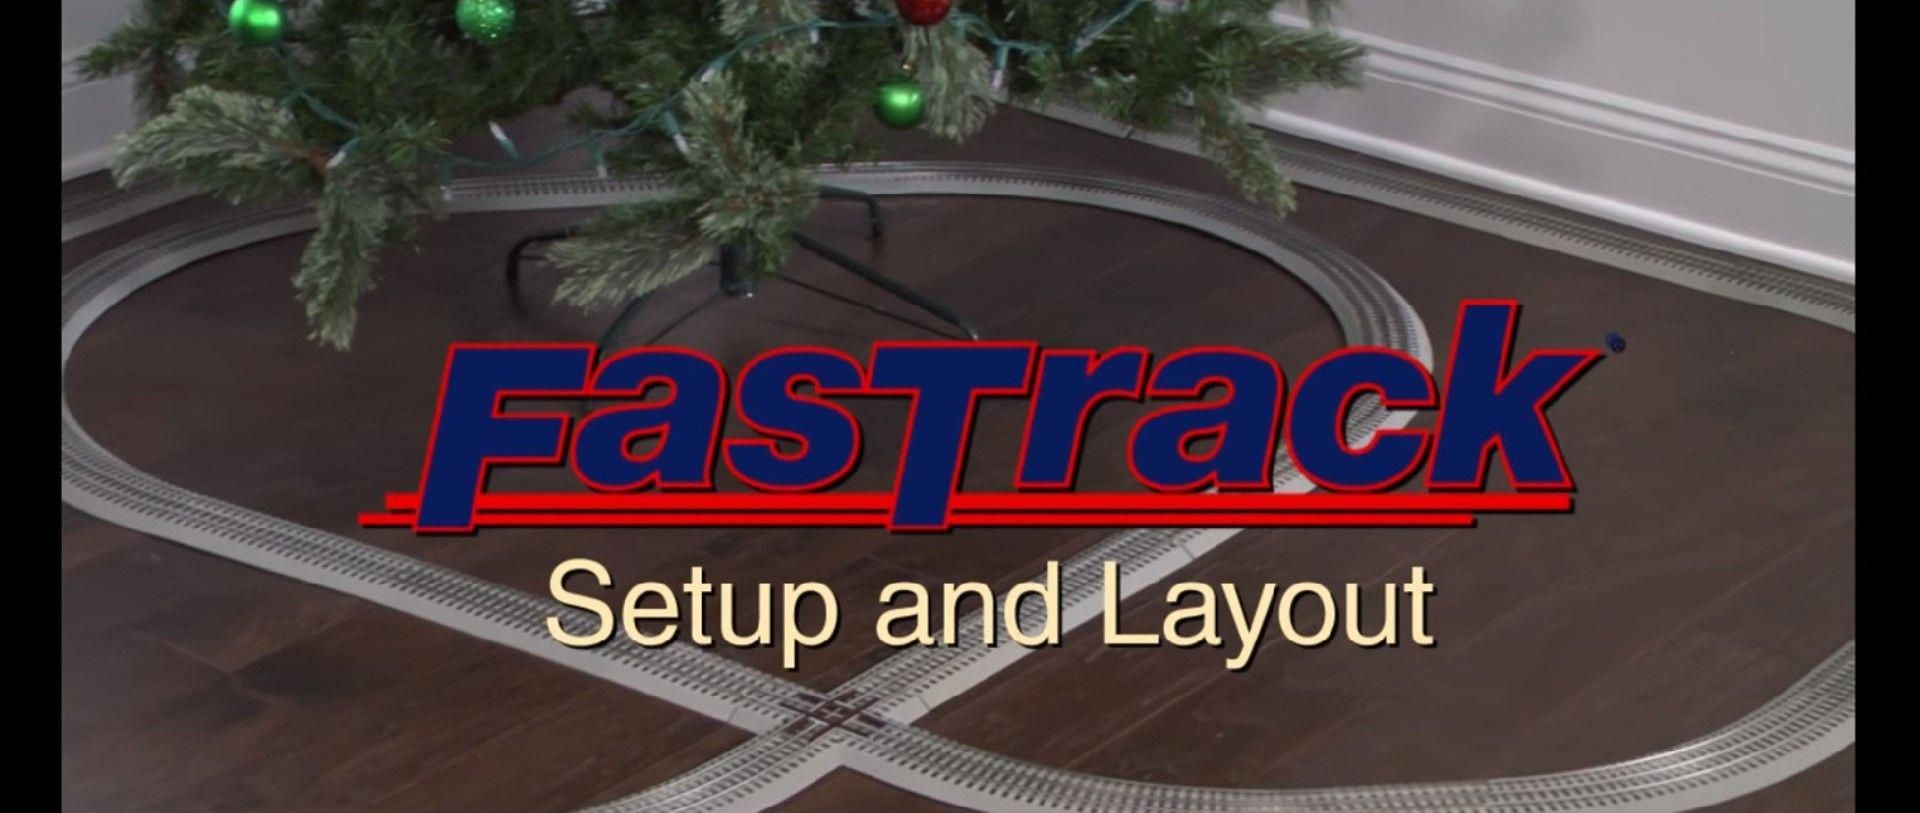 Lionel FasTrack Layouts Layout, Model trains, Toy trains set